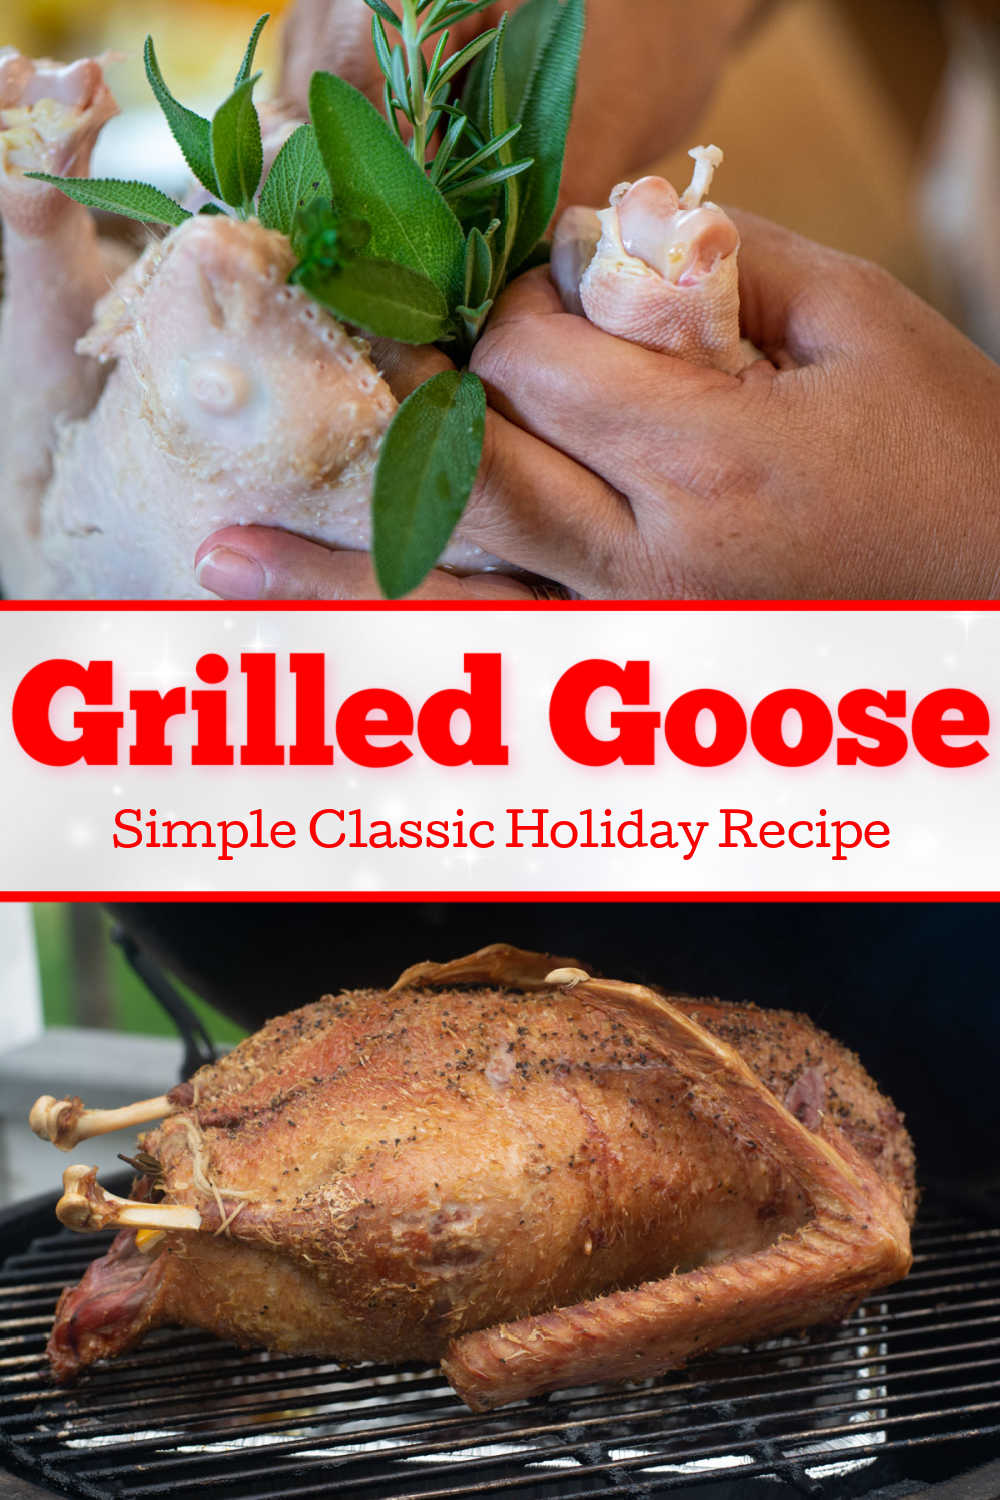 How to Grill a Goose